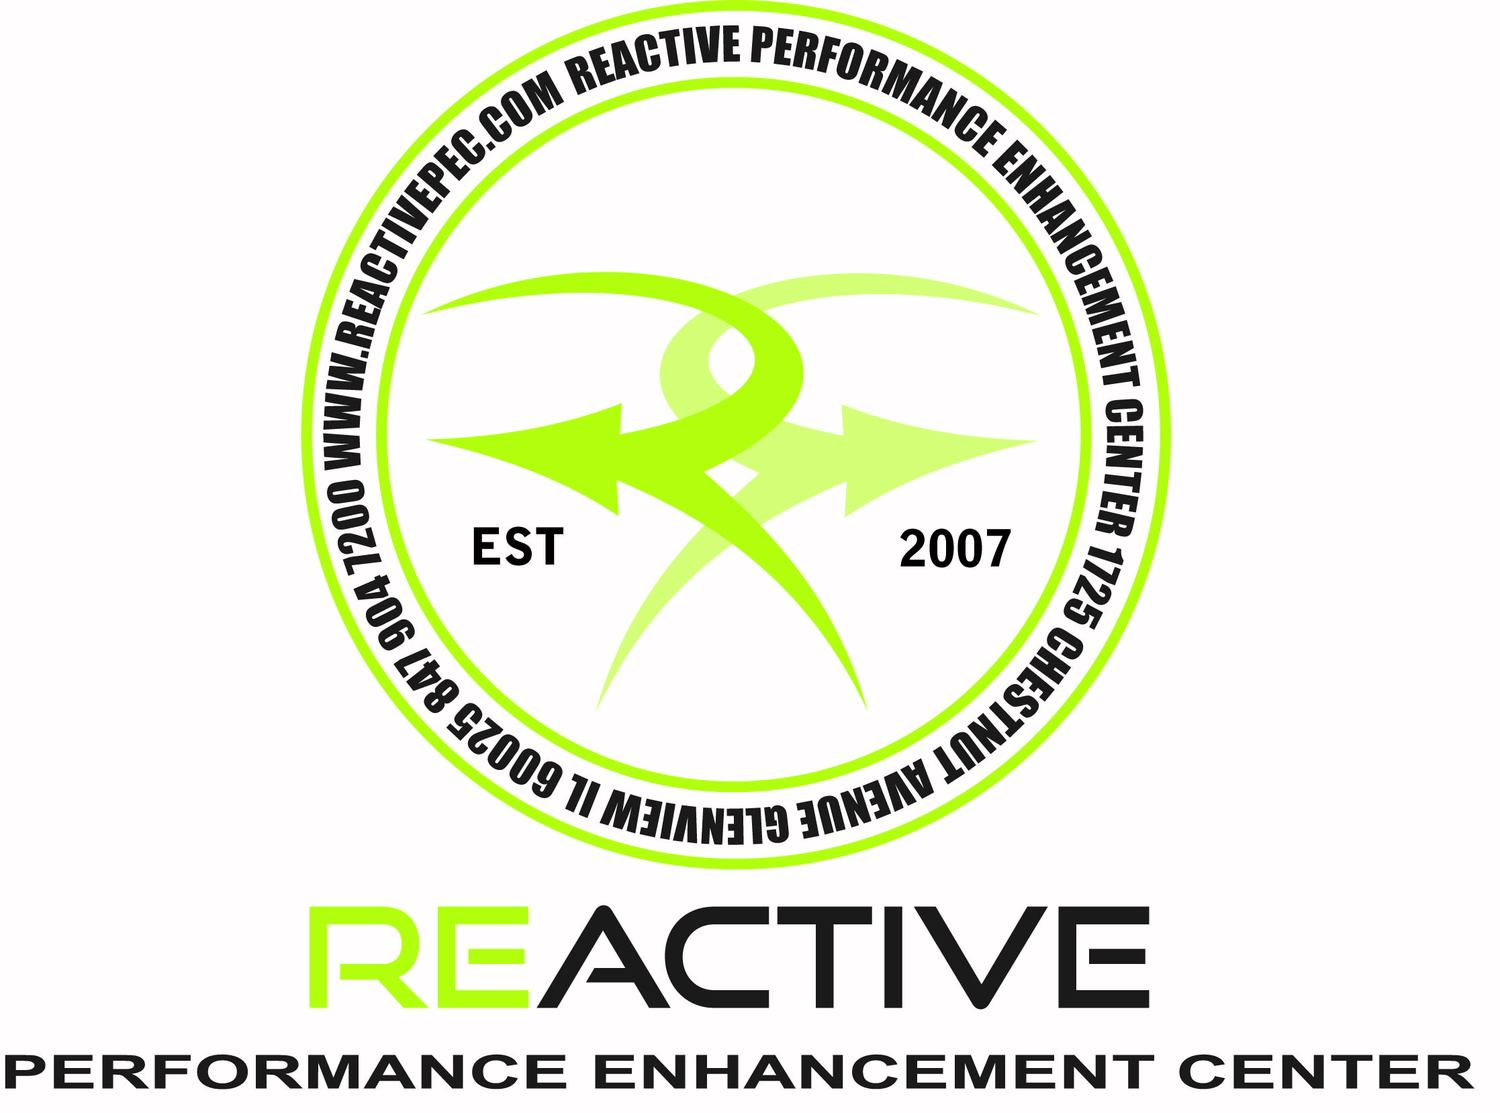 Reactive Performance Enhancement Center